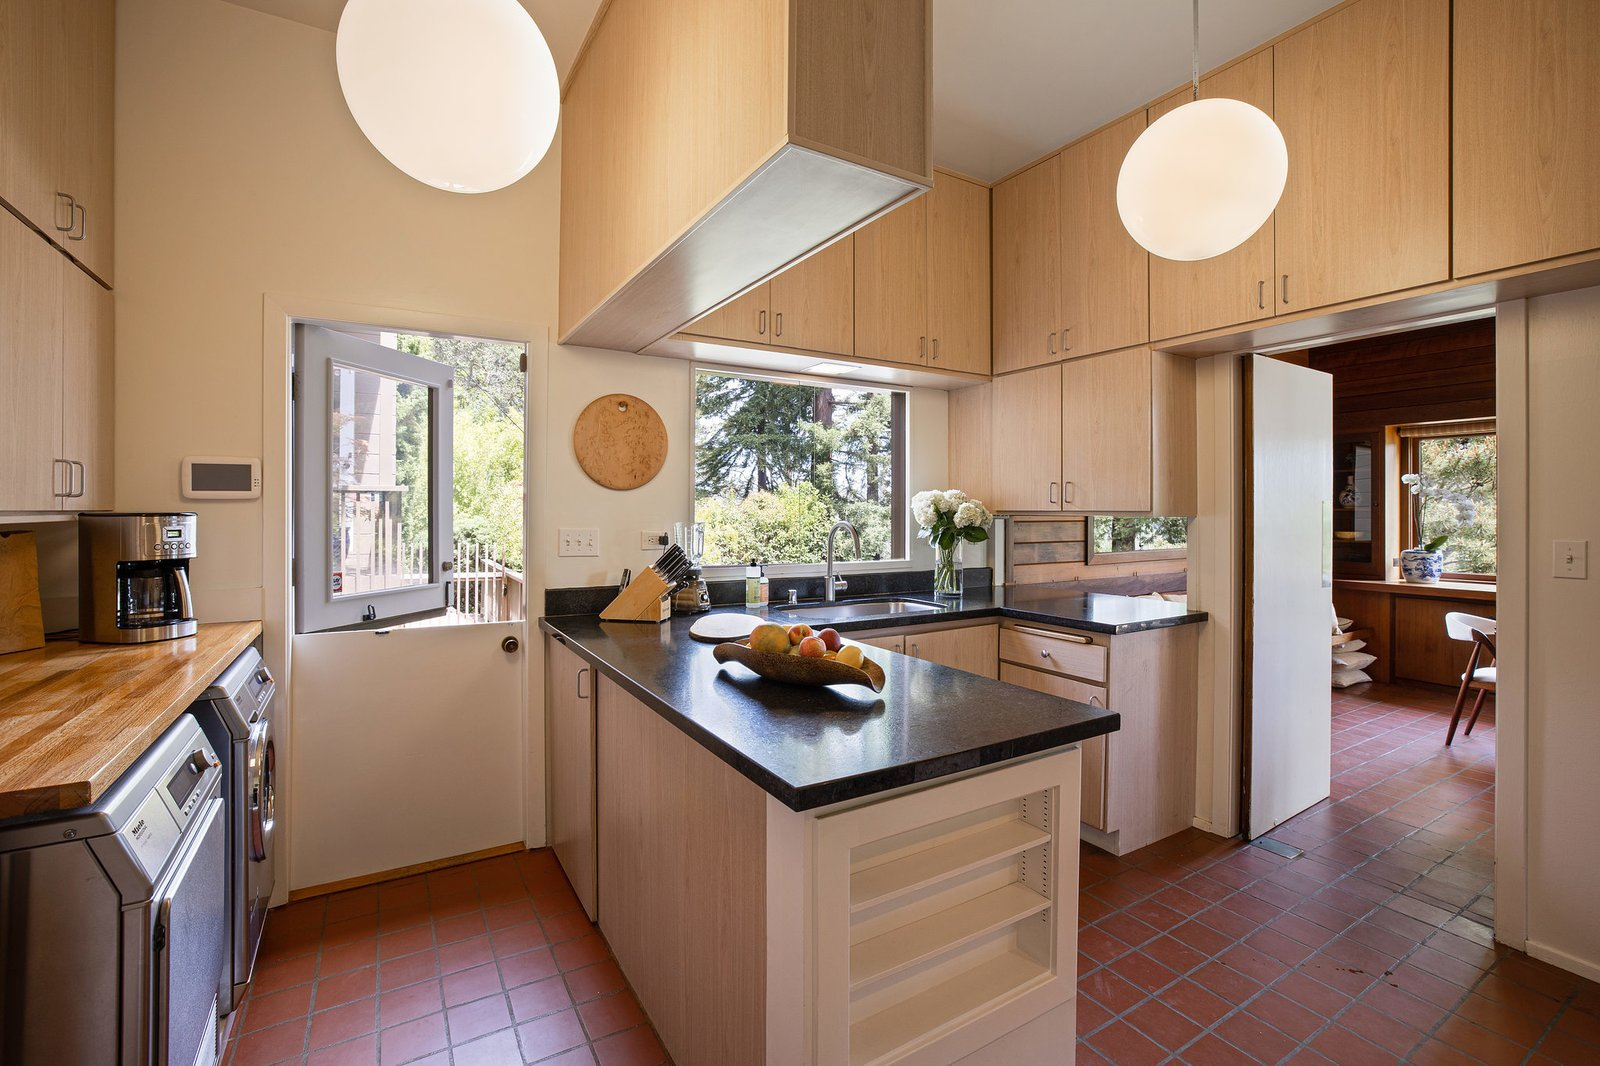 The kitchen also provides direct access to the outdoor patio.  Photo 10 of 21 in An Impeccable Midcentury Compound in the Berkeley Hills Wants $3.4M